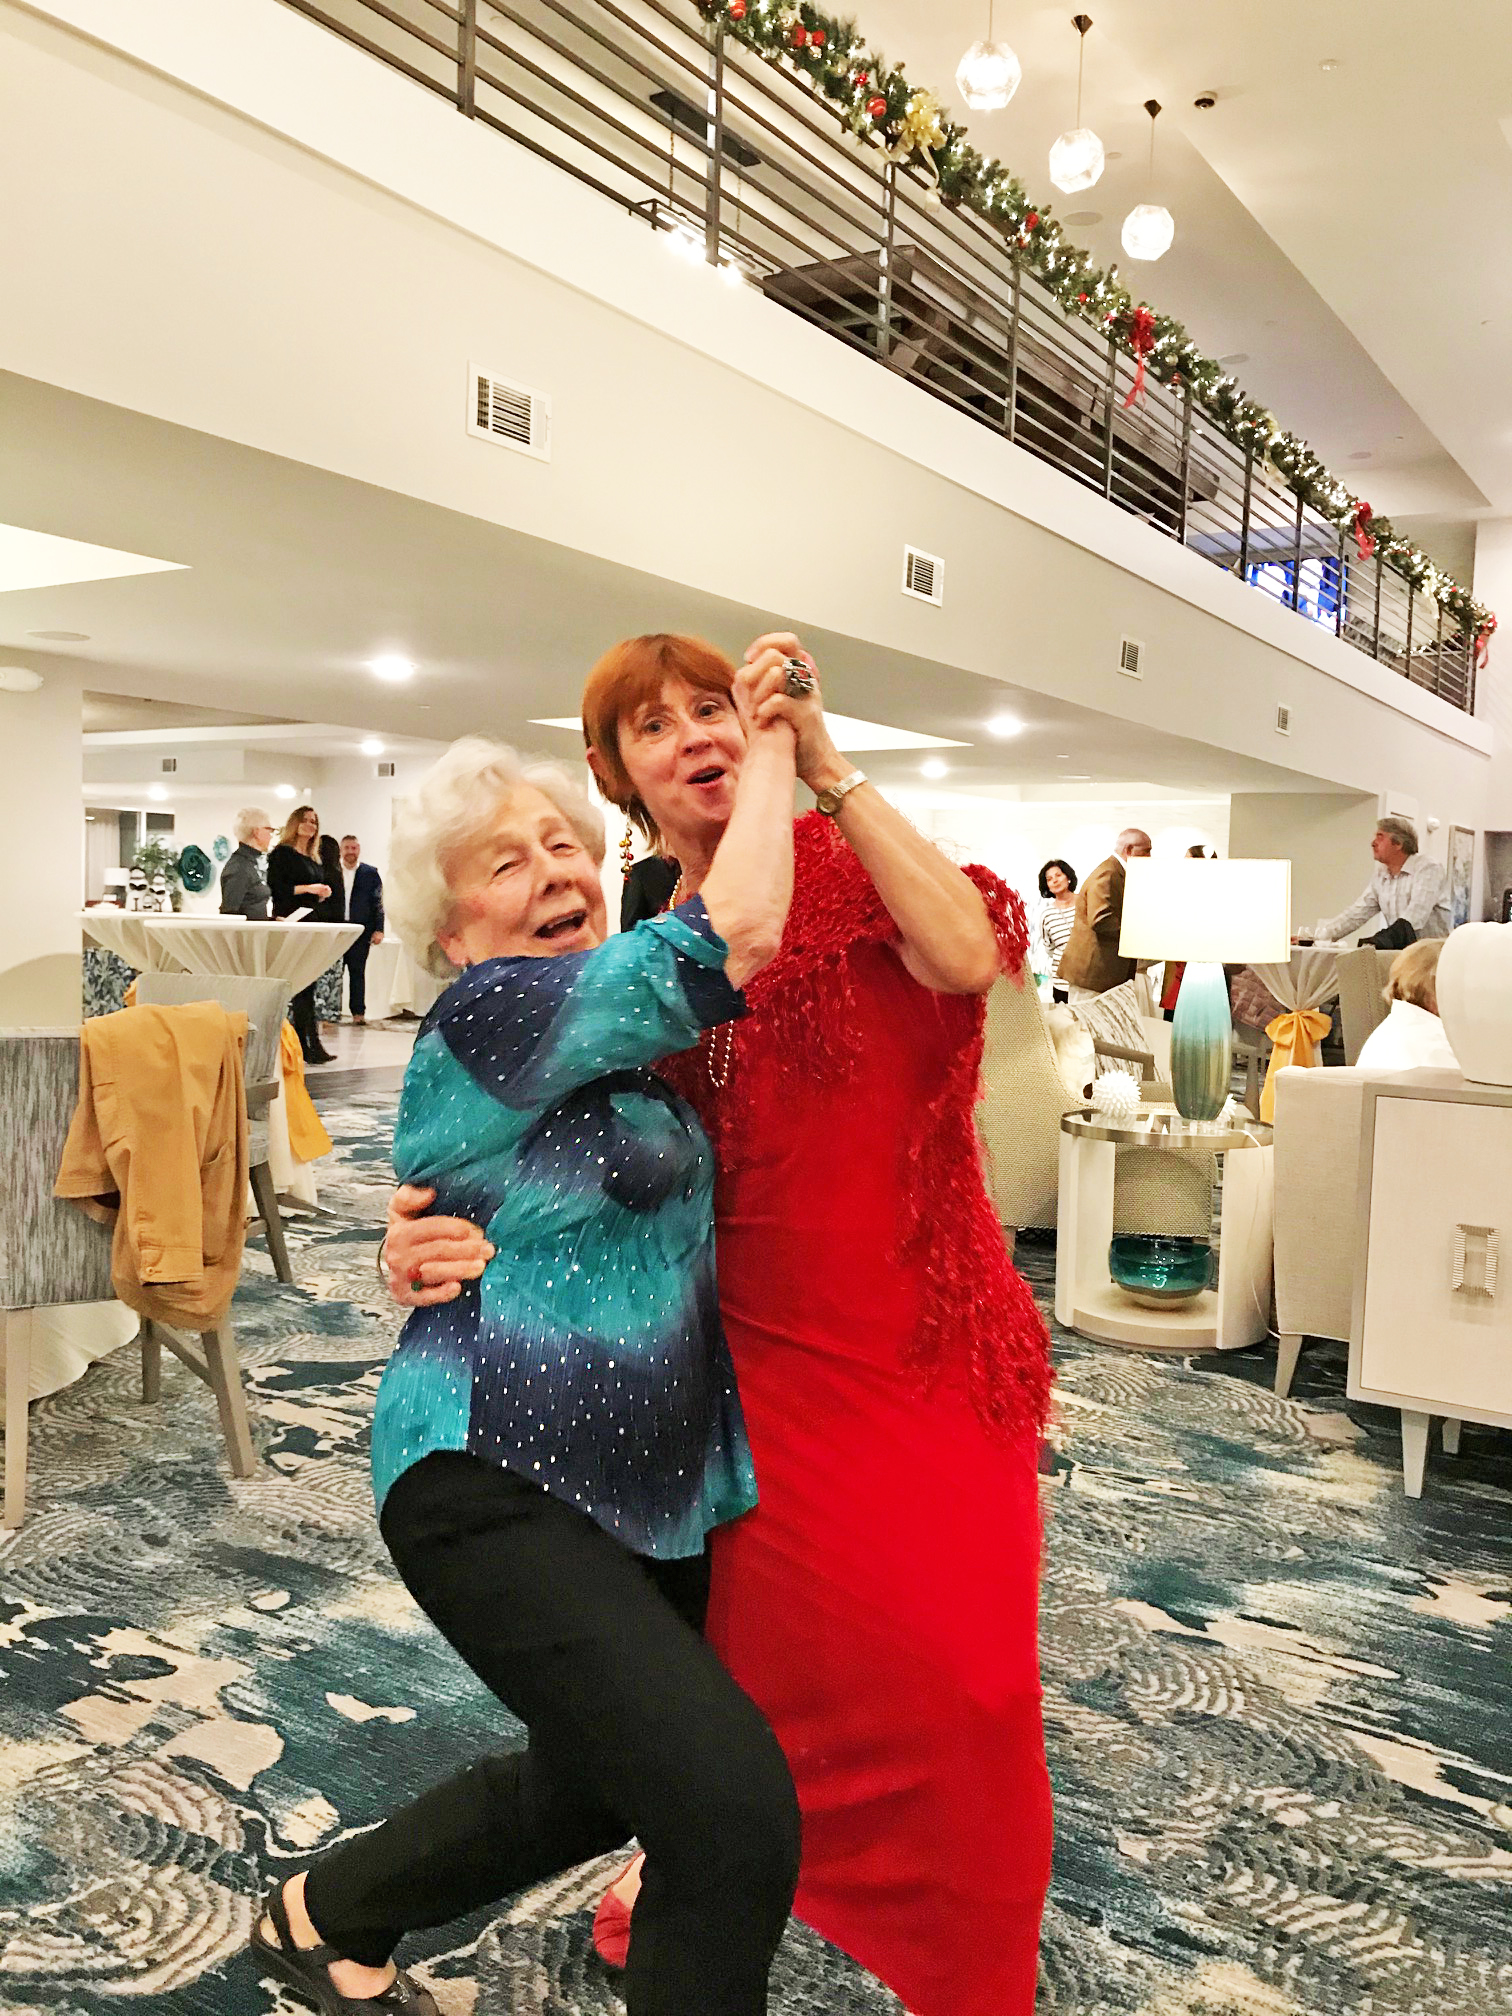 Meet the dancing queens: Mary Koschoff and Barbara Groh.